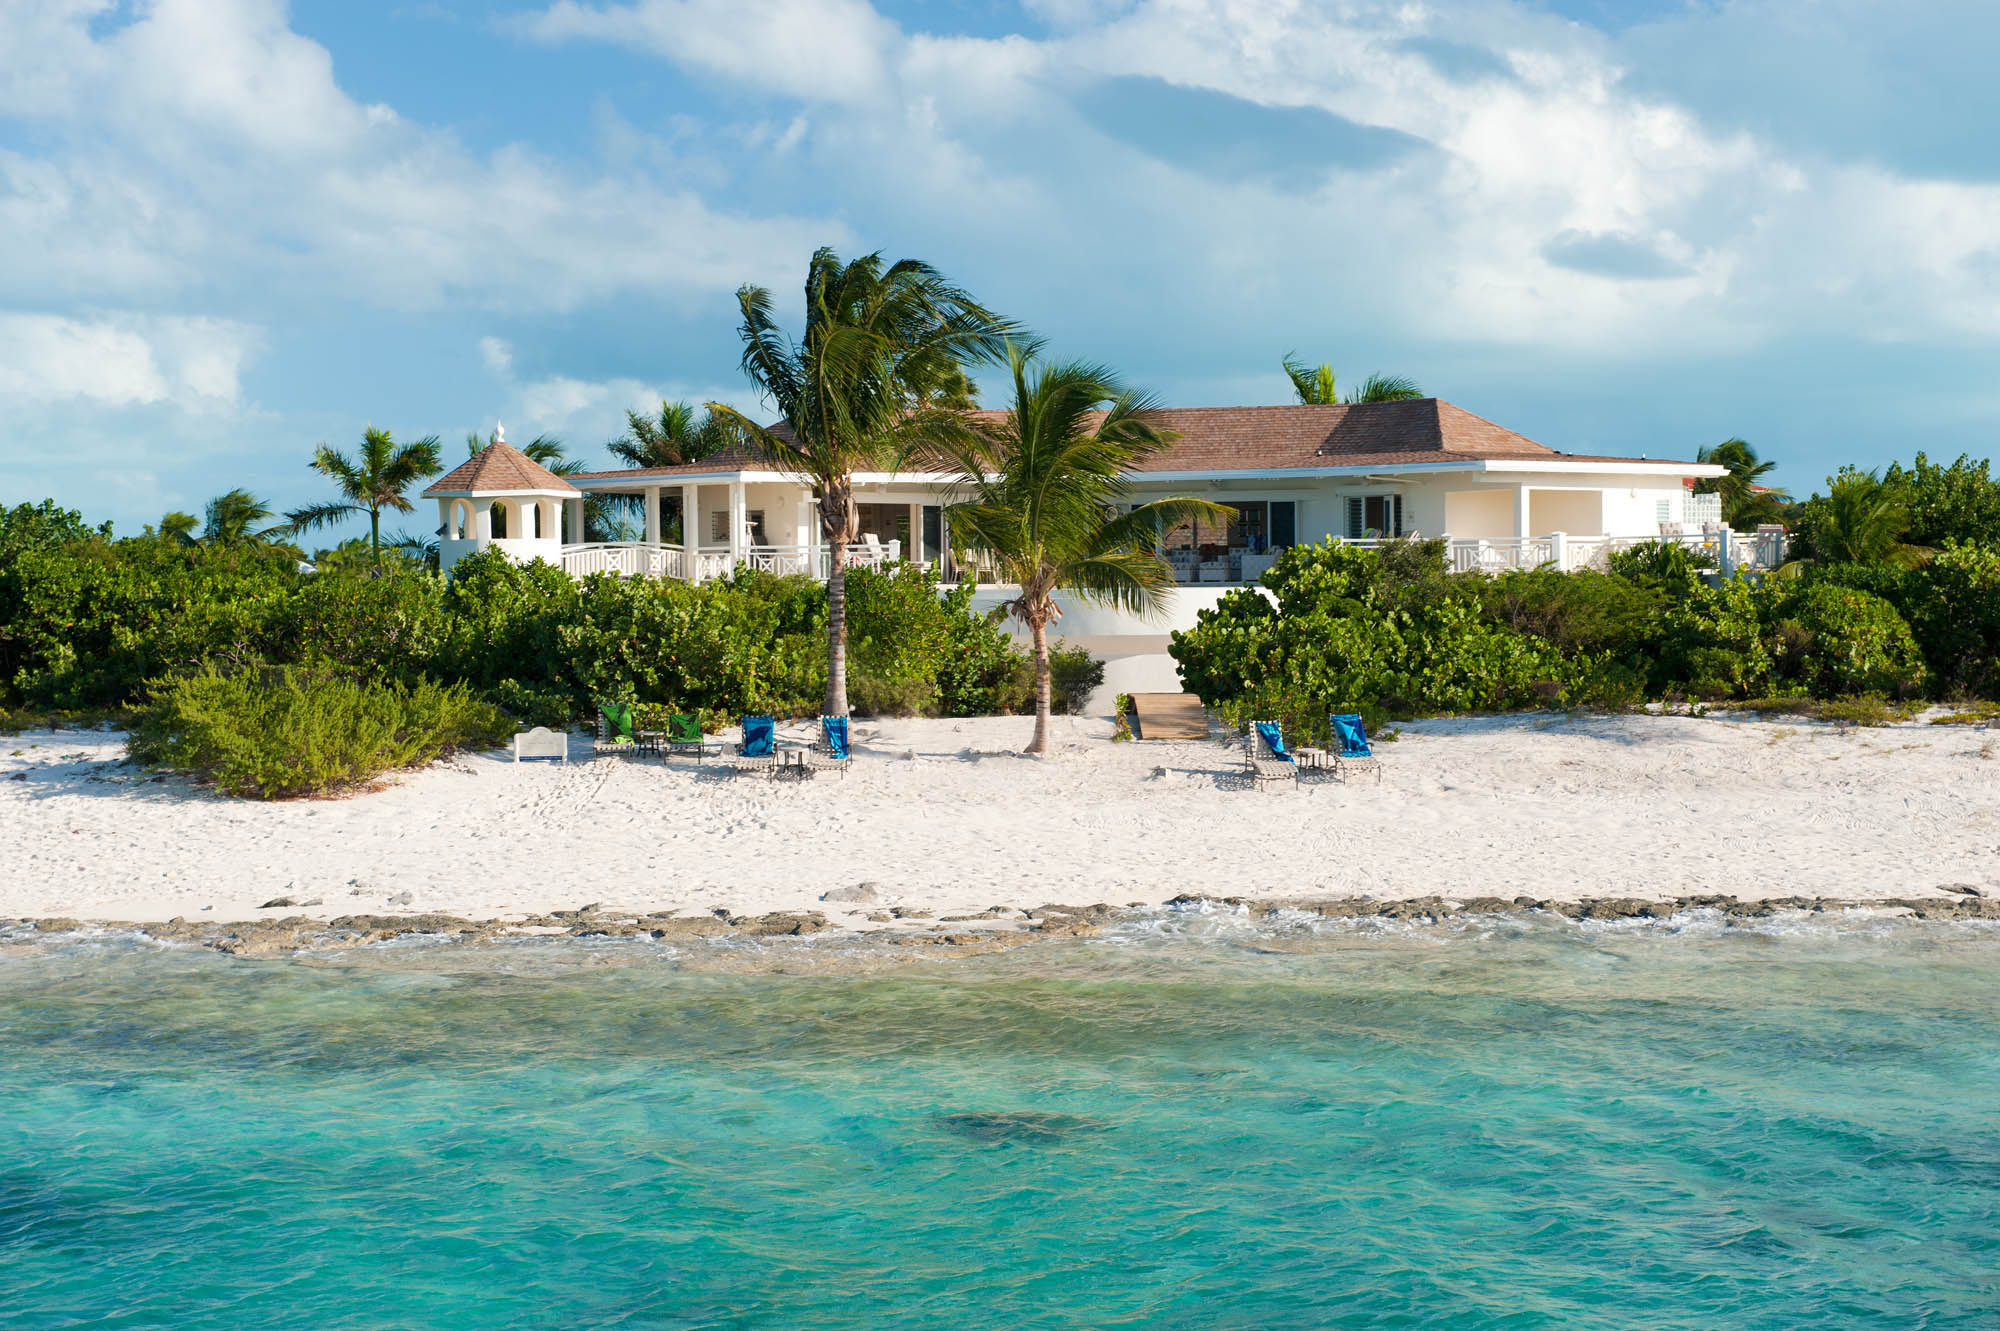 The view of Turtle Beach Villa, Grace Bay Beach, Providenciales (Provo), Turks and Caicos Islands from the sea.